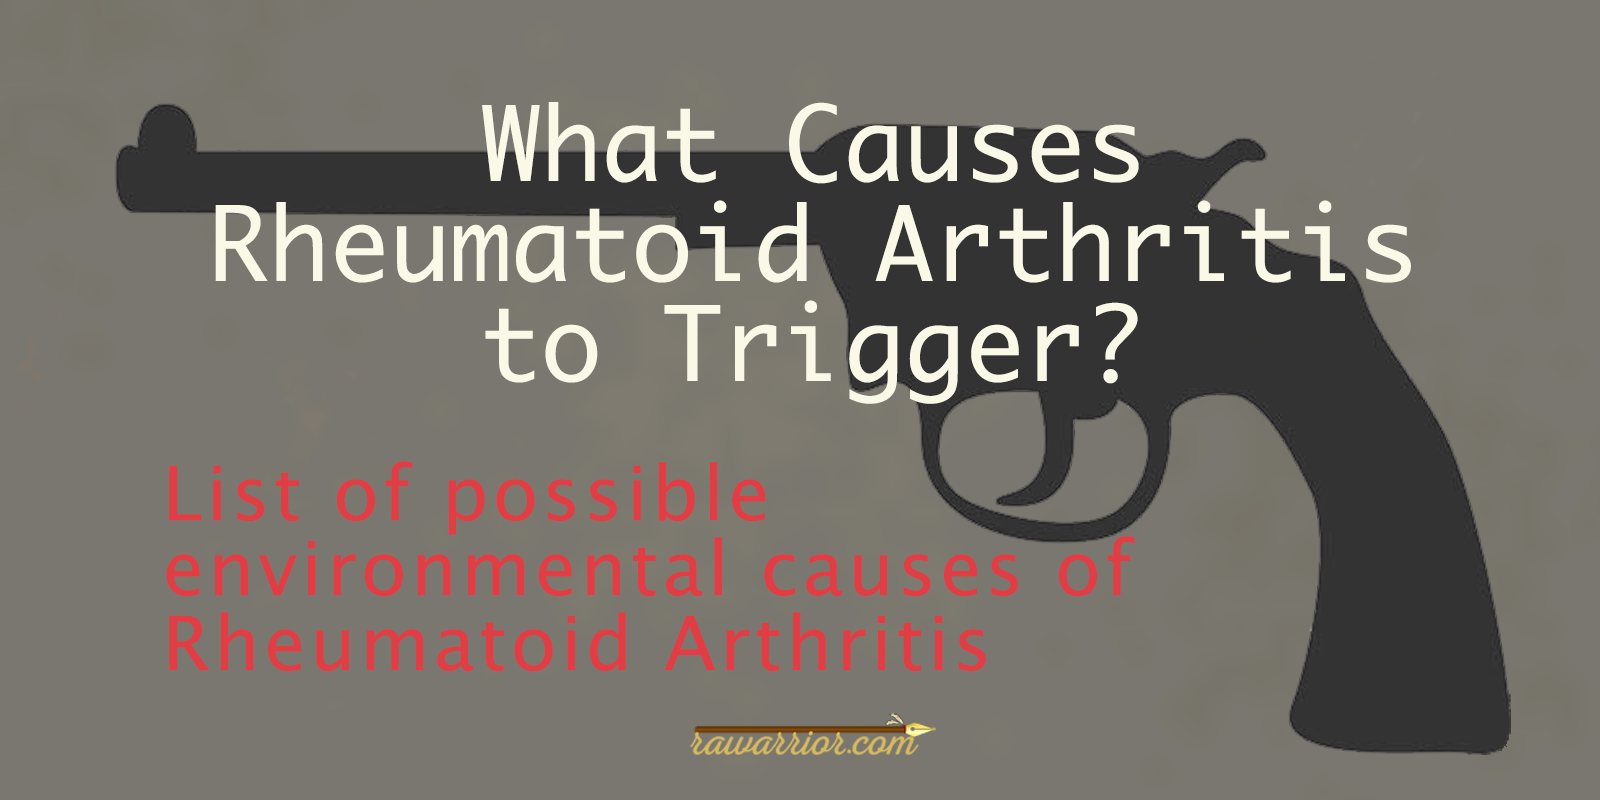 What Causes Rheumatoid Arthritis to Trigger?